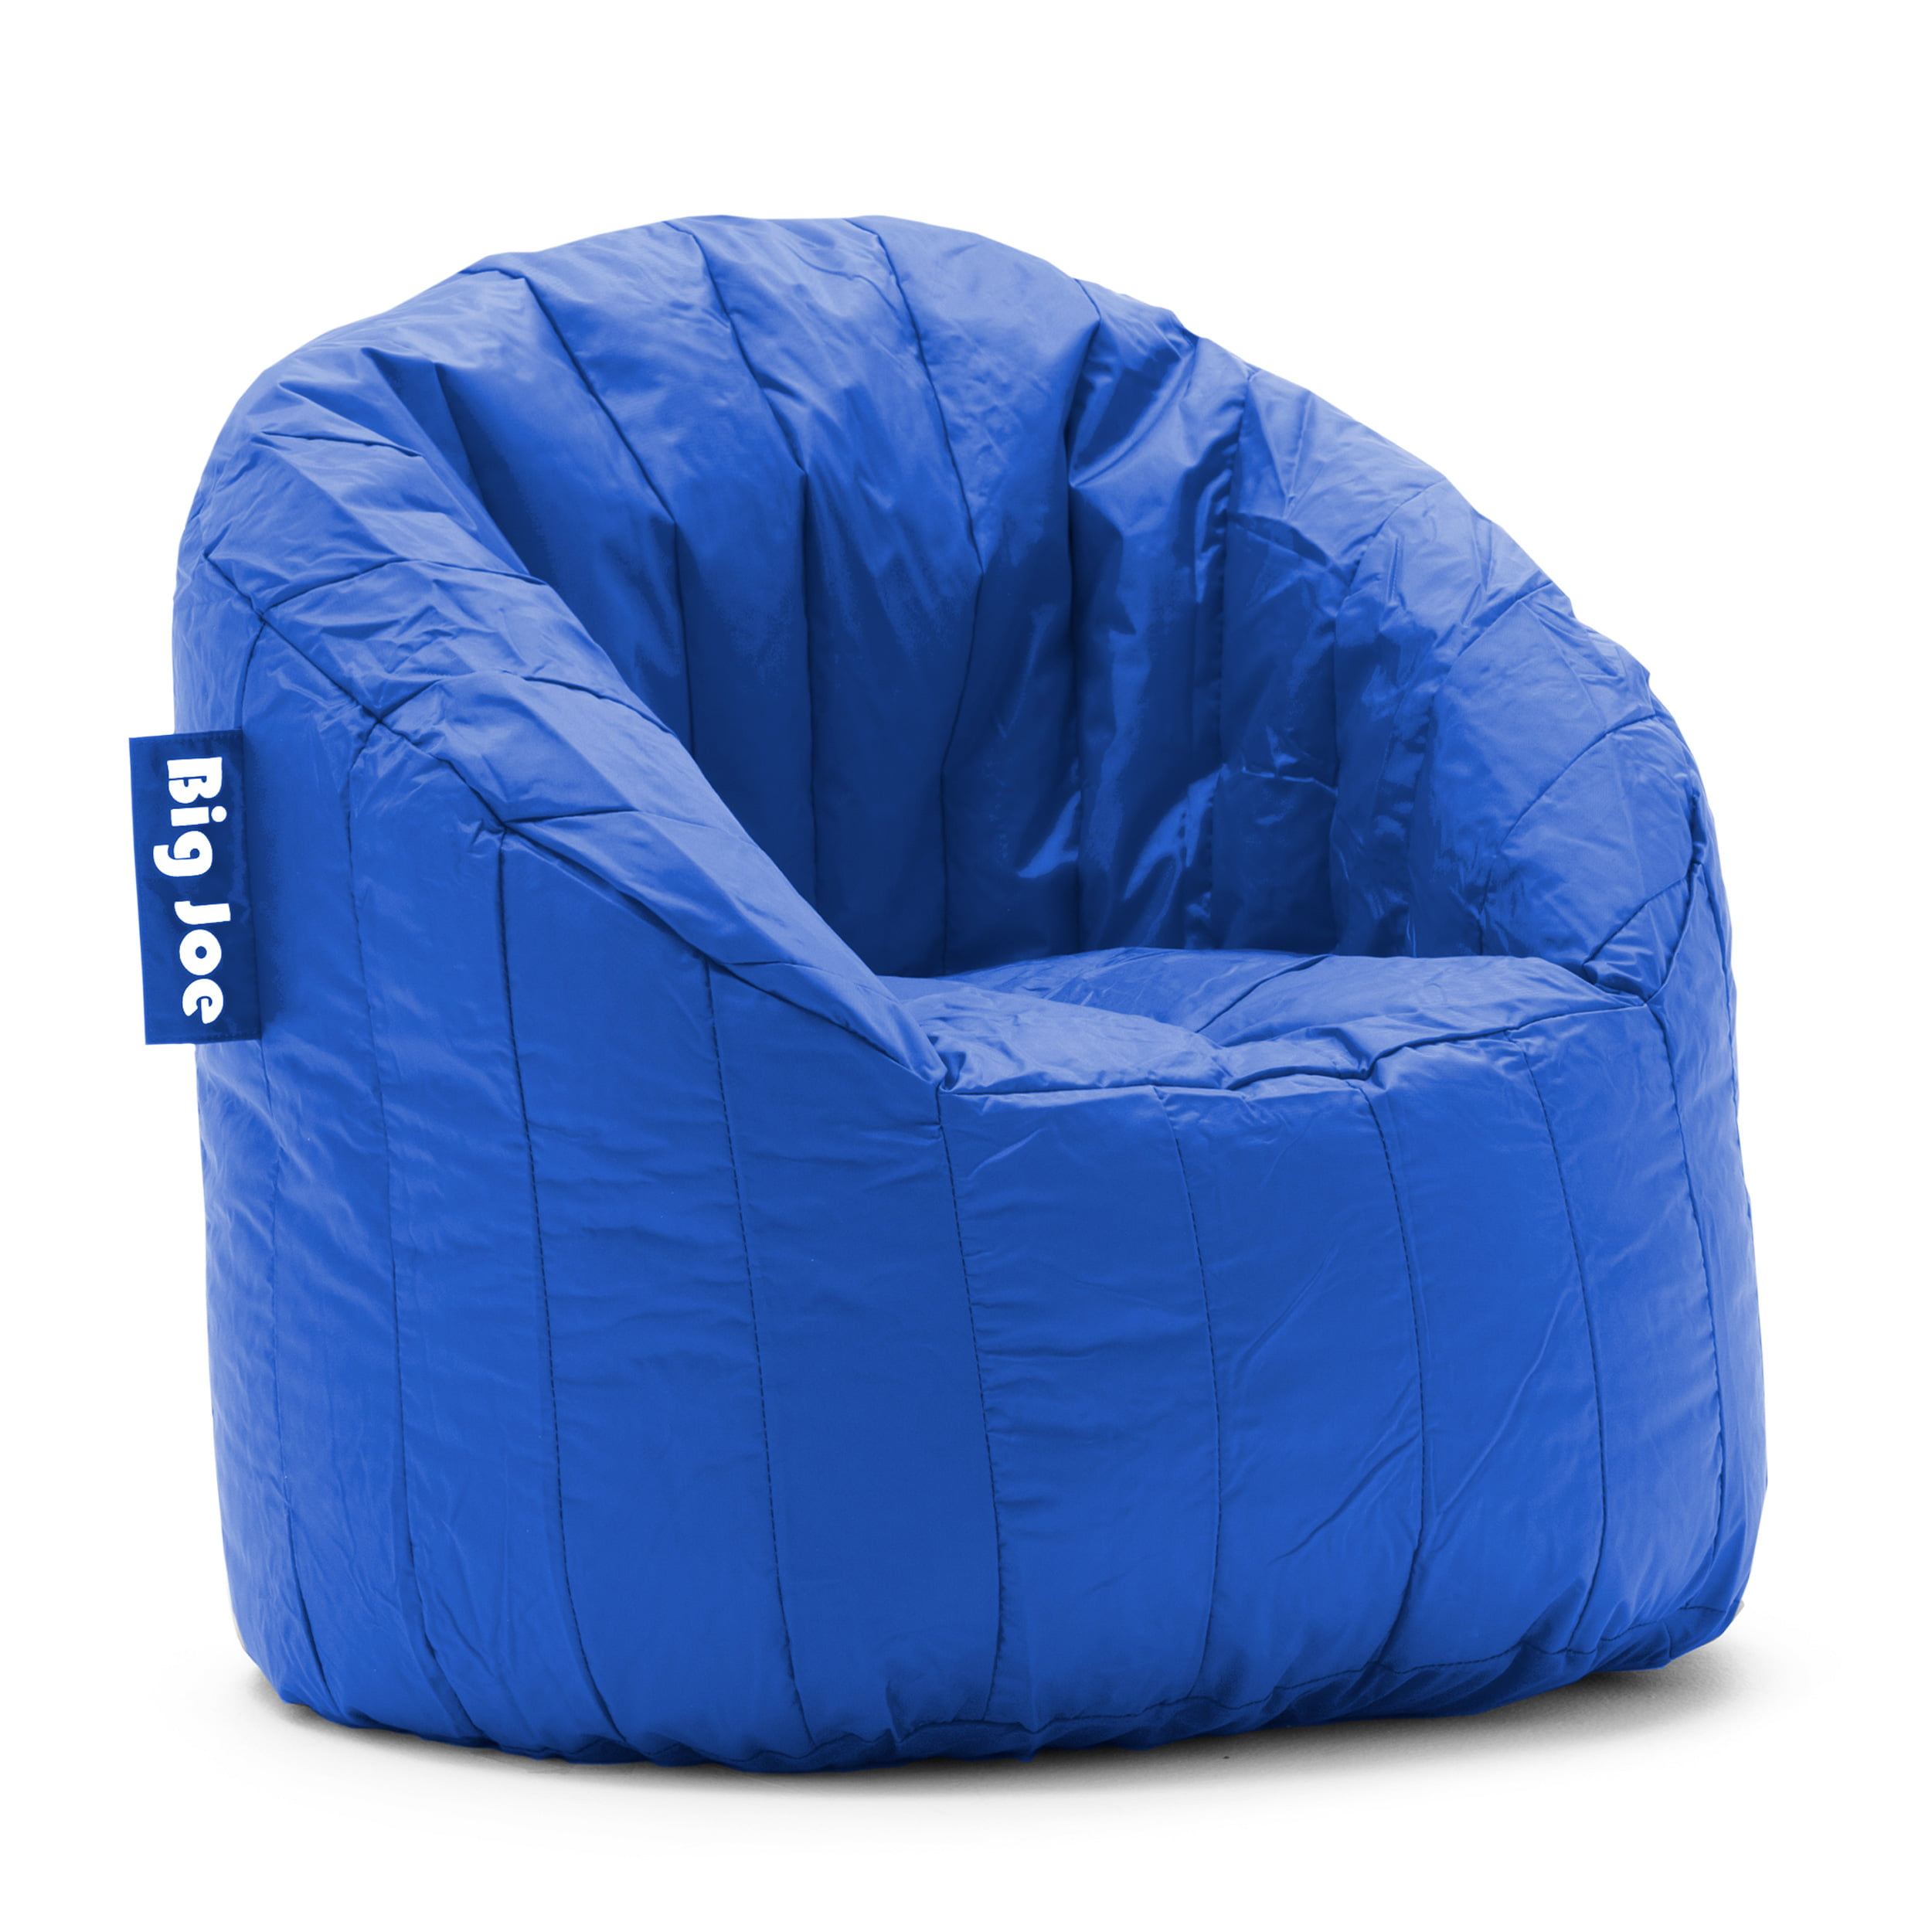 sc 1 st  Walmart & Big Joe Lumin Bean Bag Chair Available in Multiple Colors - Walmart.com